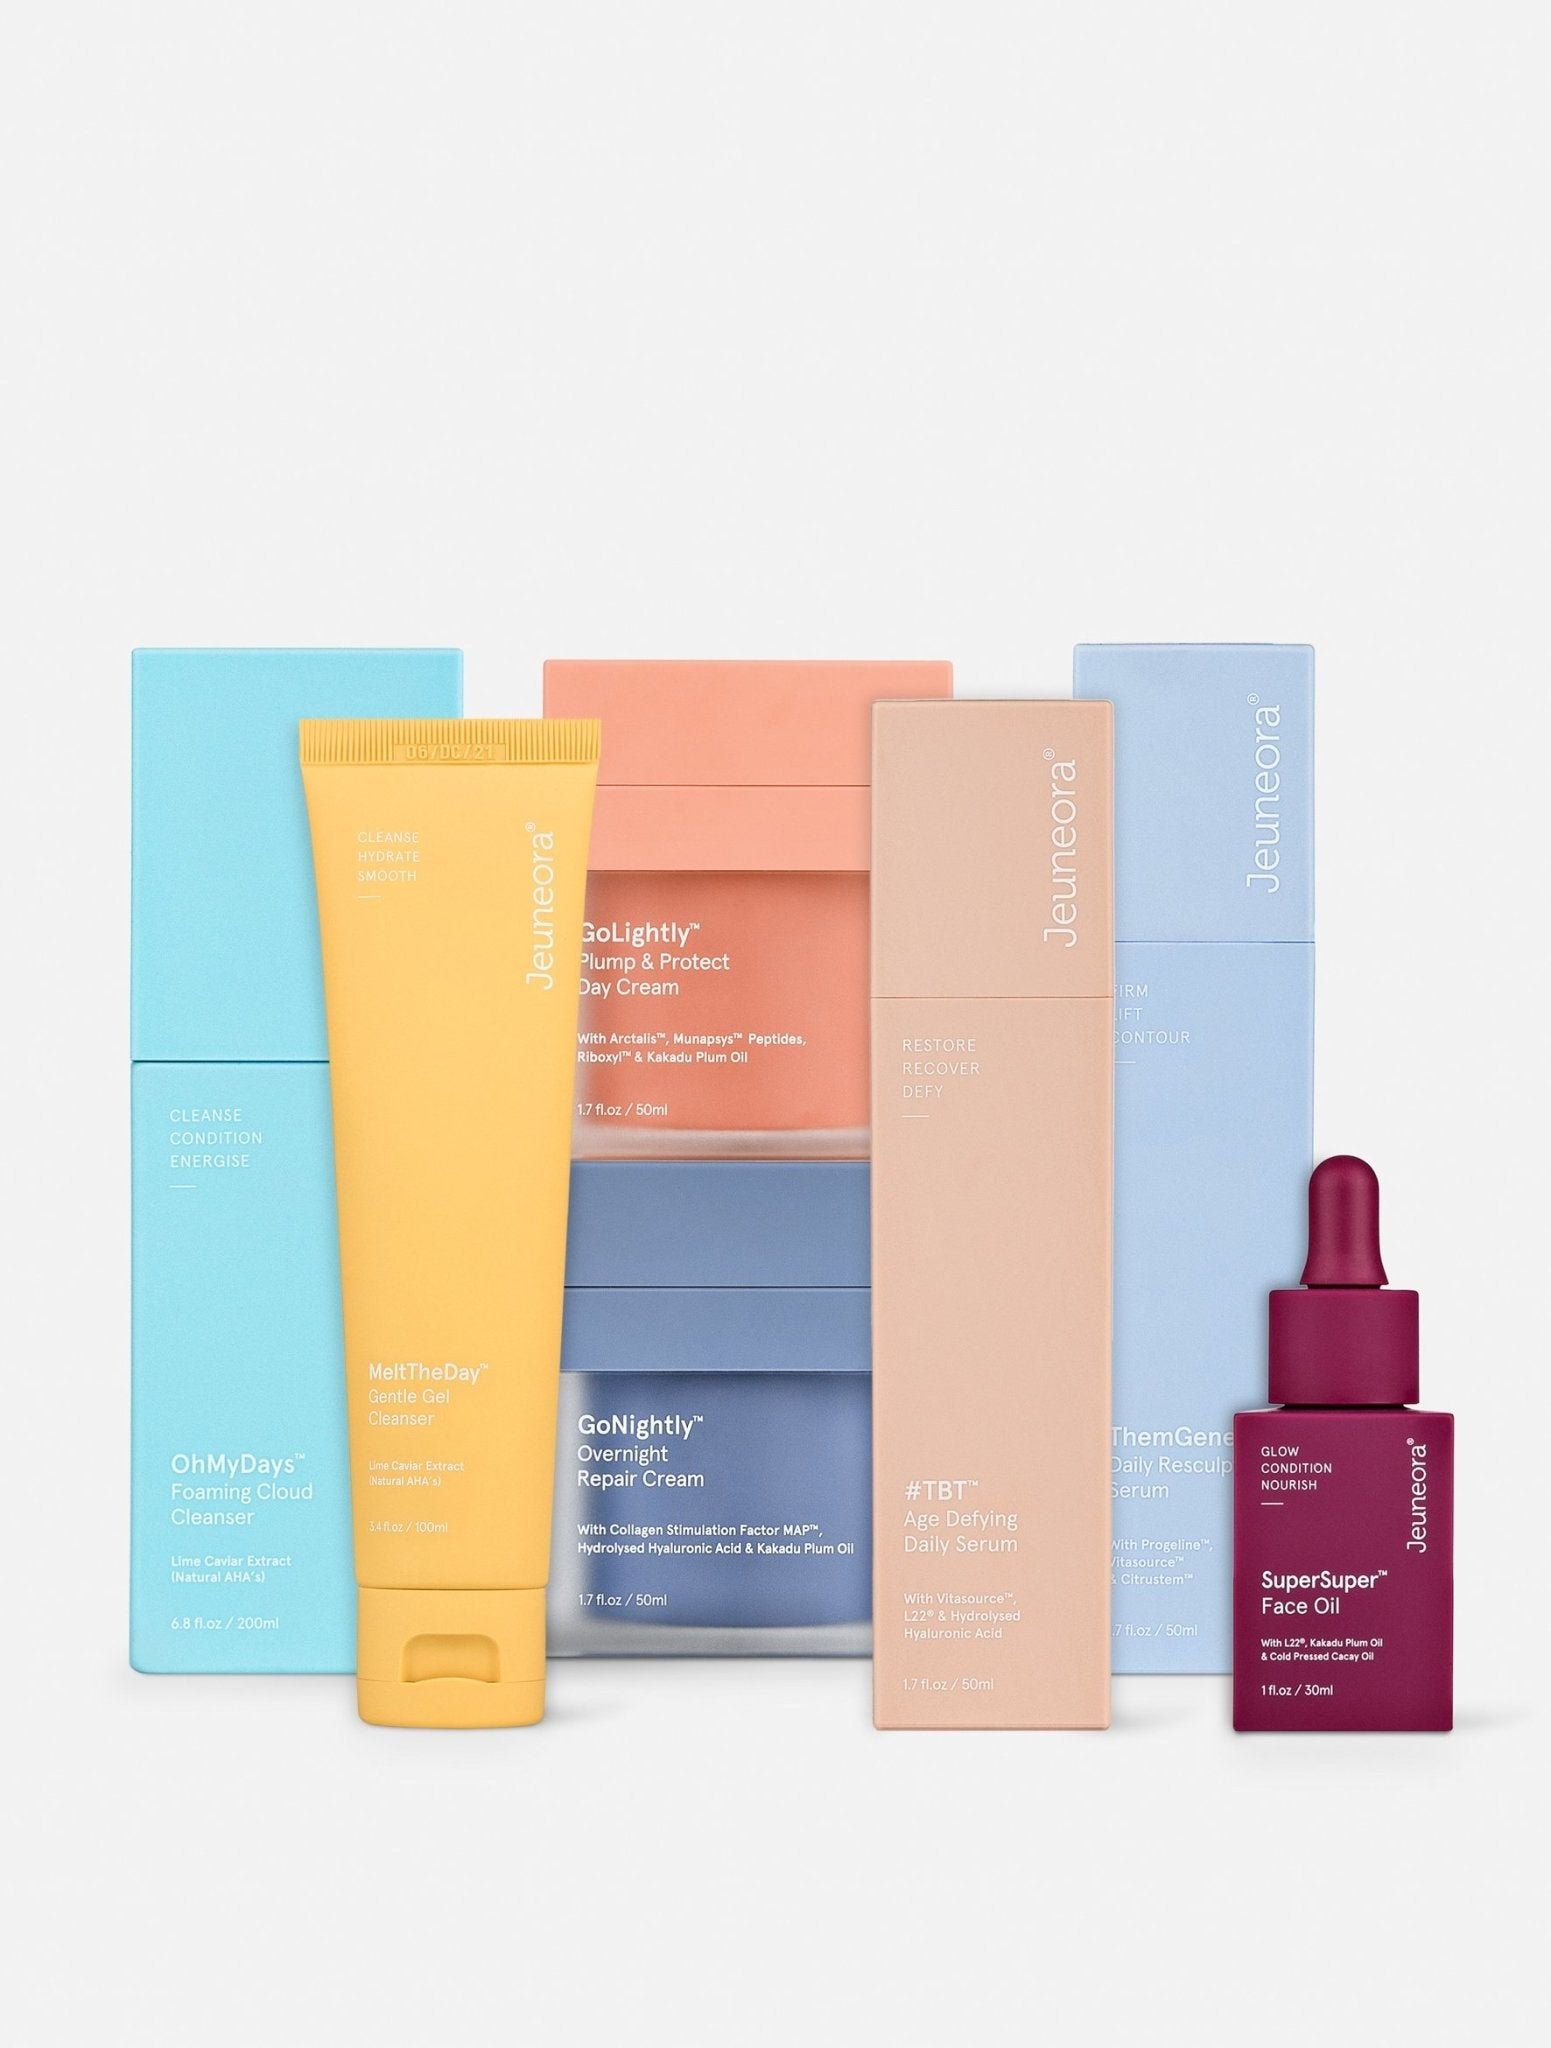 Jeuneora Skincare The Essential Seven - Limited Offer - Jeuneora® Australia